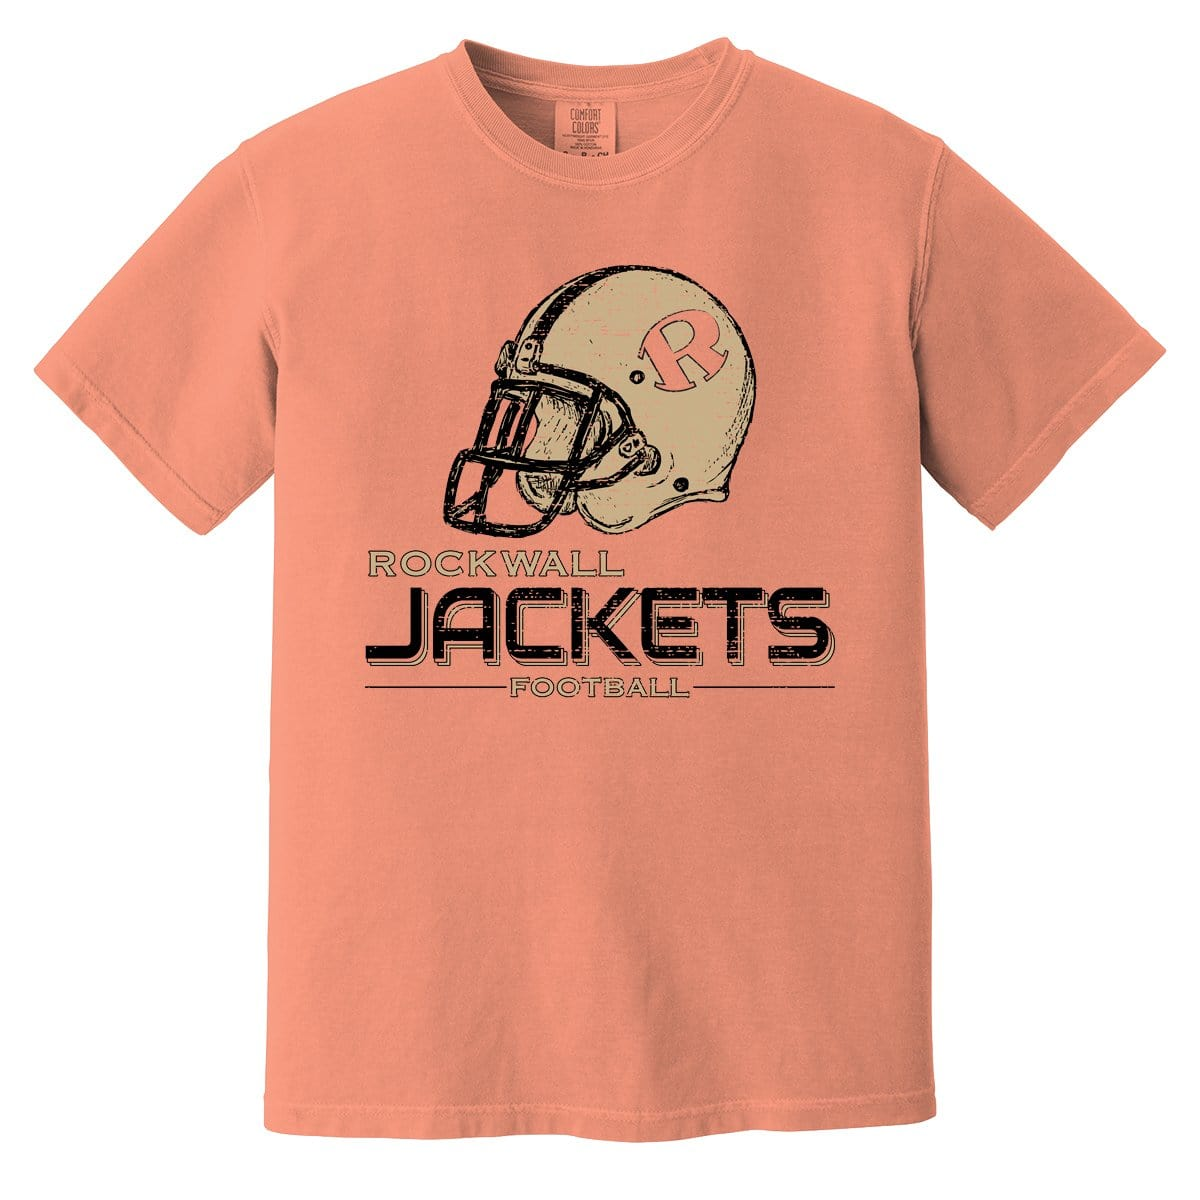 Rockwall Jackets Football Helmet